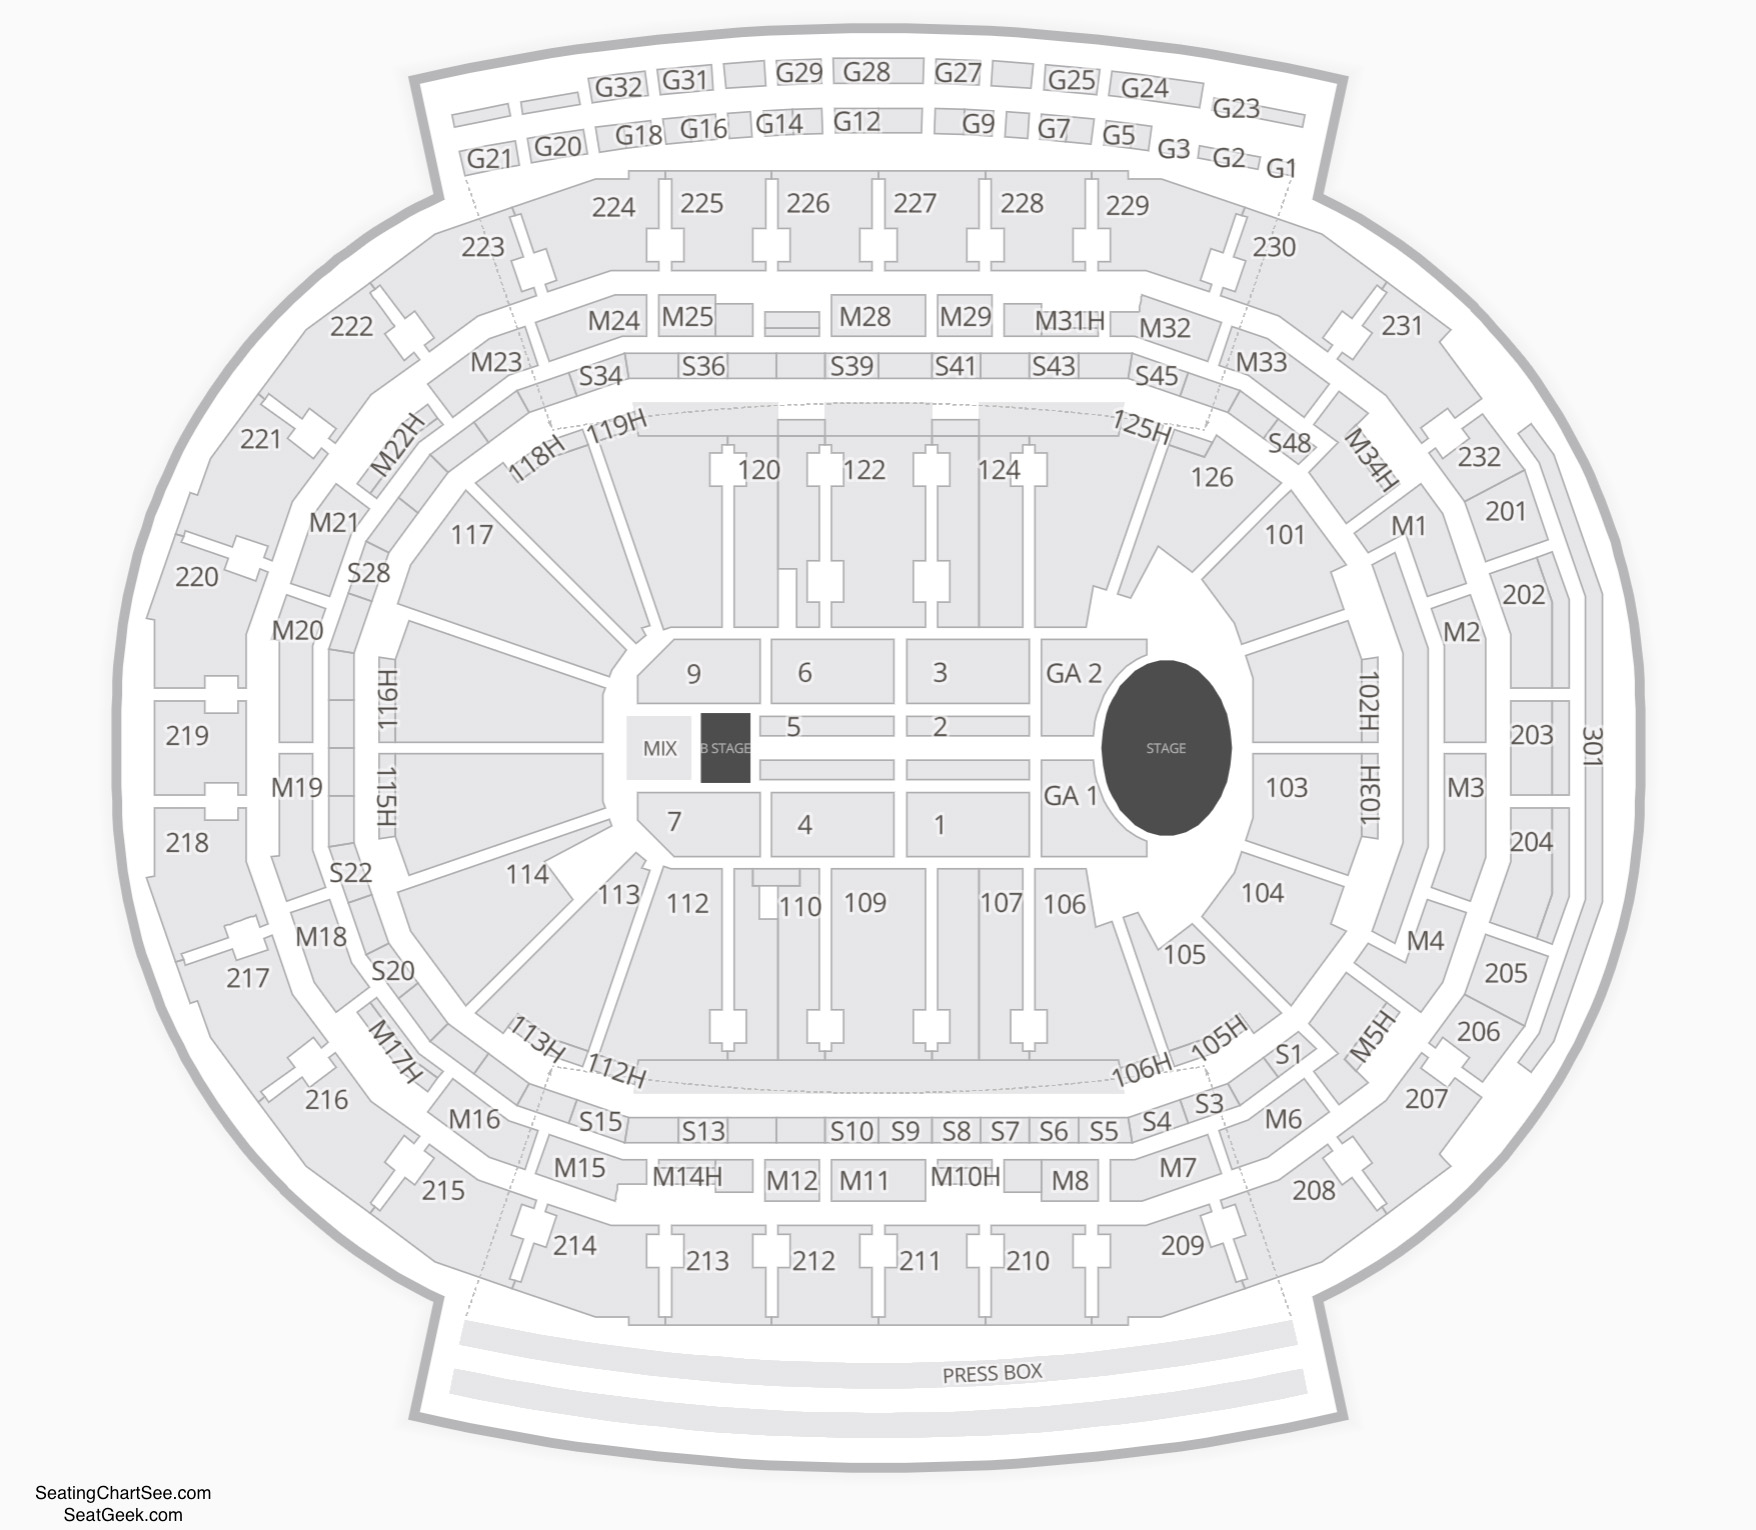 Little Caesars Arena Concert Seating Chart